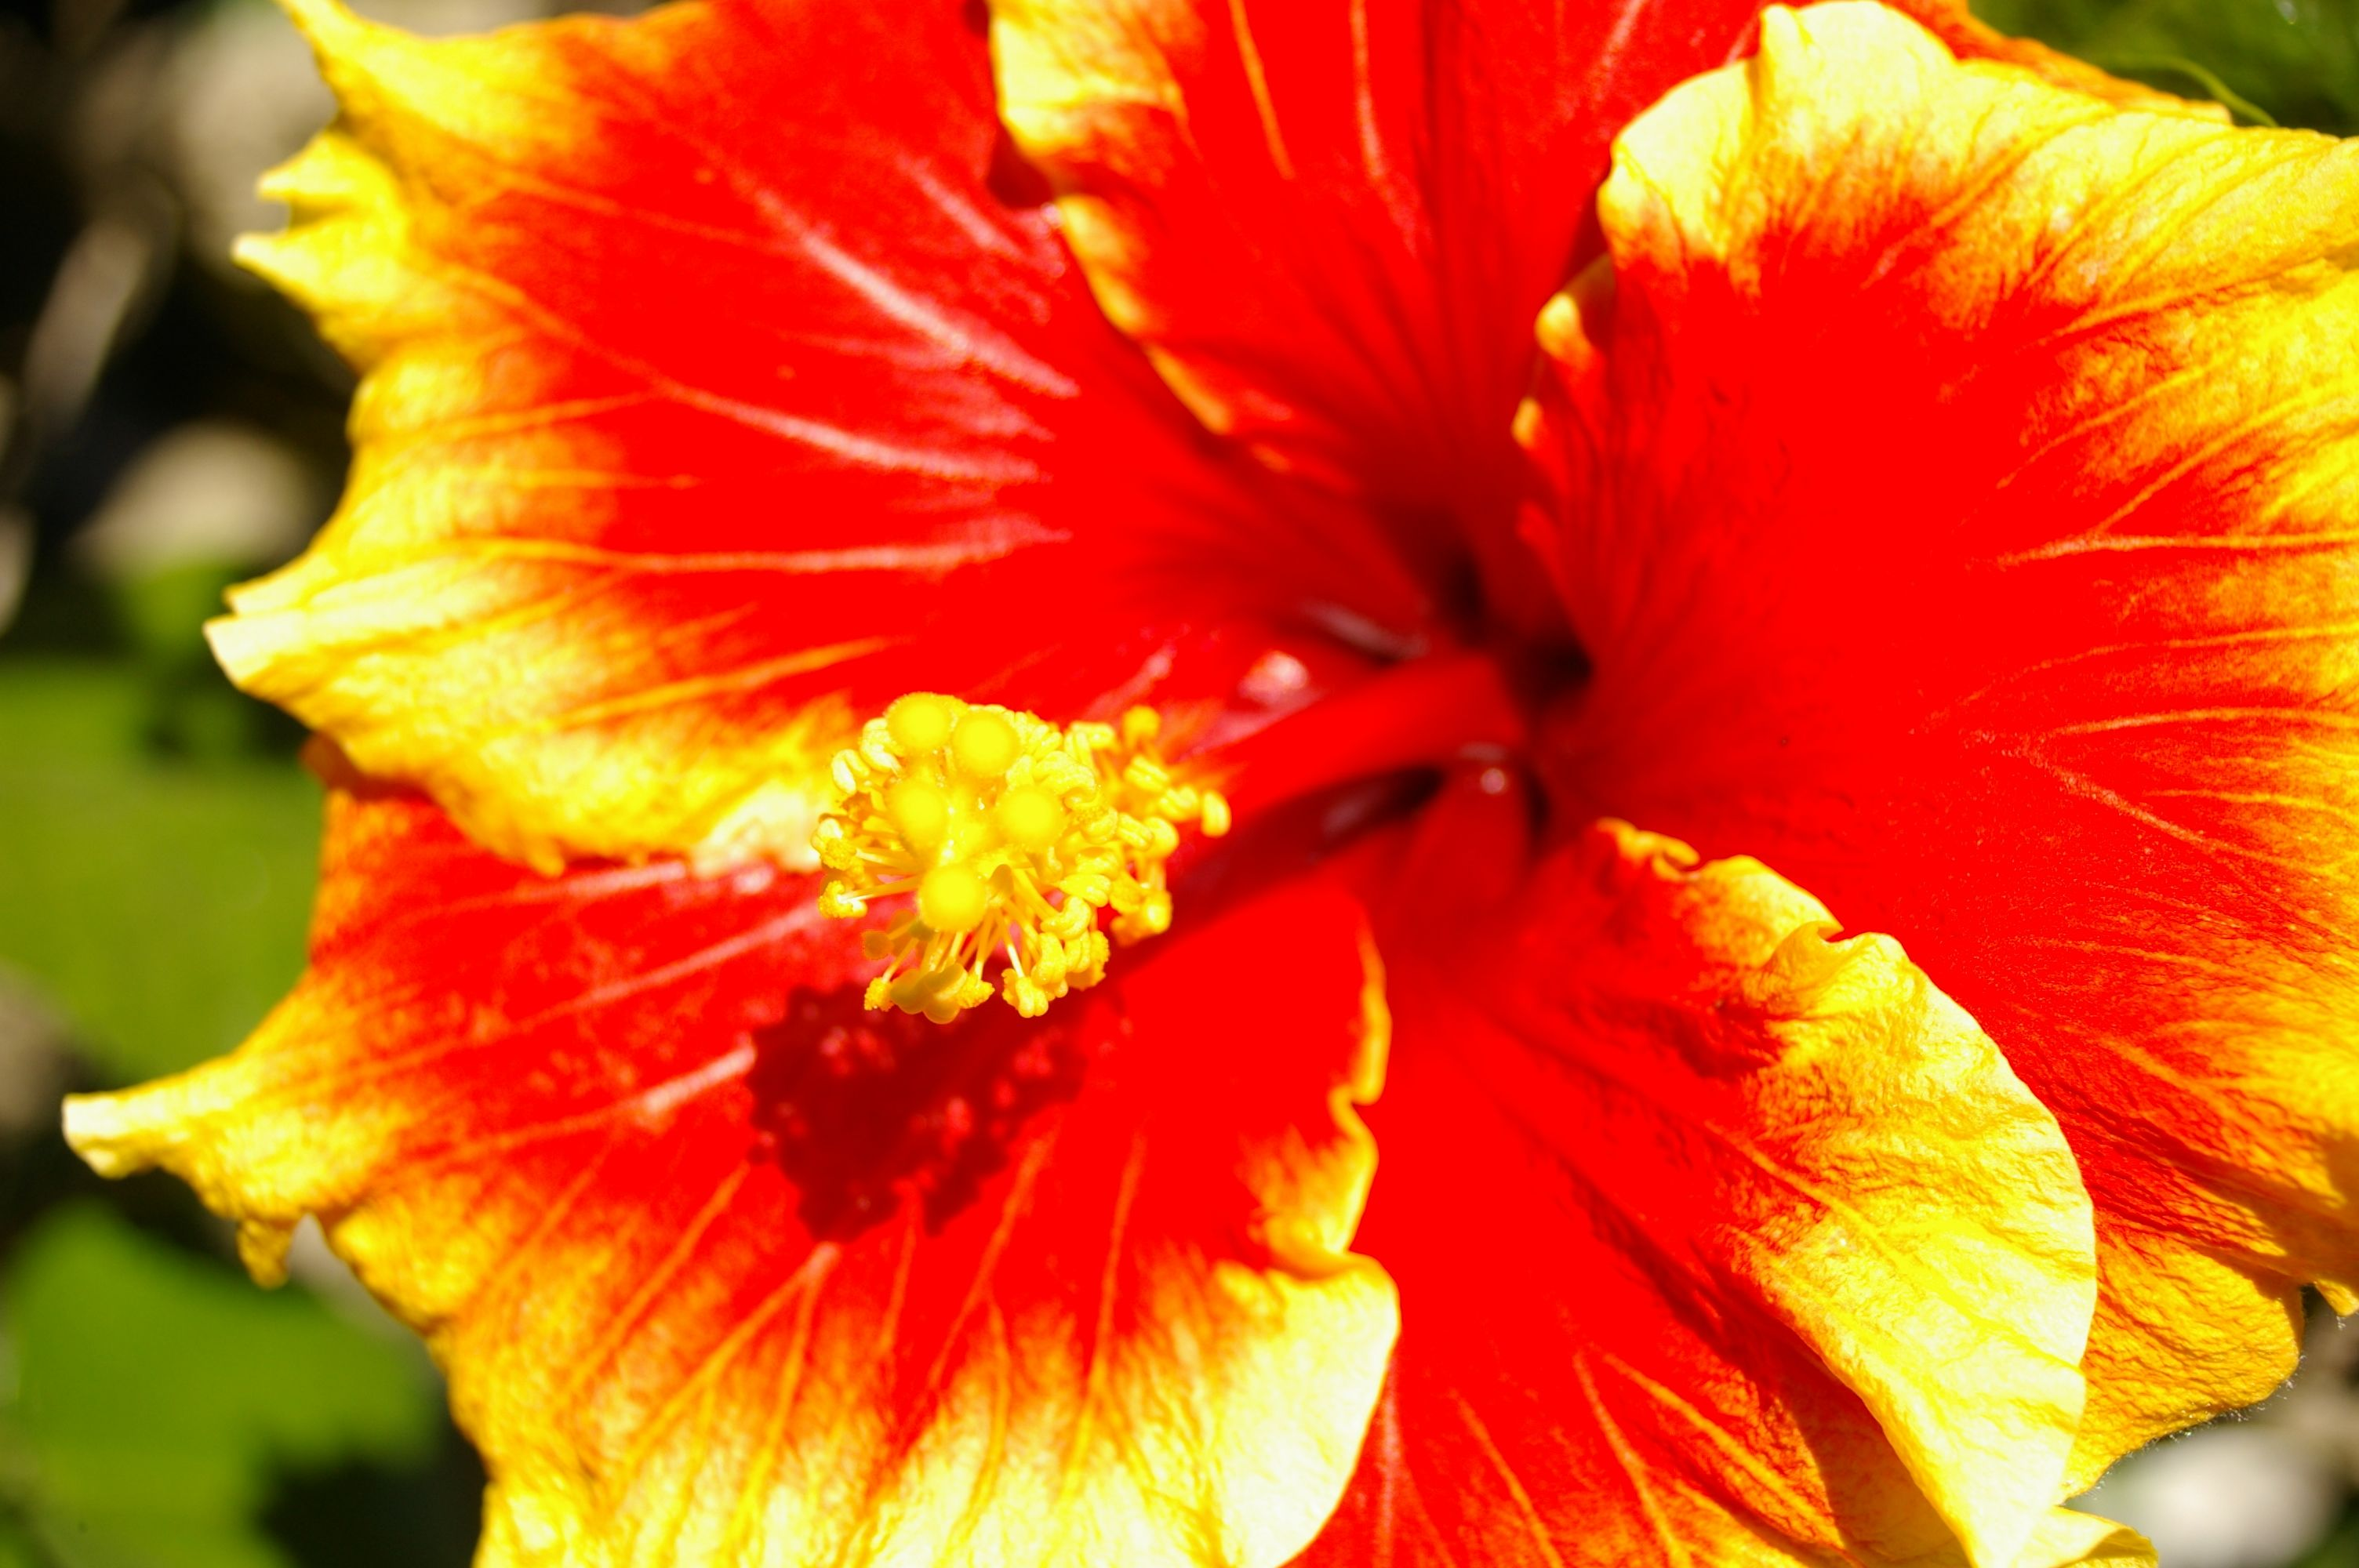 Fire Hibiscus Are True Floridian Flowers And Are Found Around The State This One Was Photographed In My Front Y Hibiscus Flowers Hibiscus Plant Hibiscus Tree